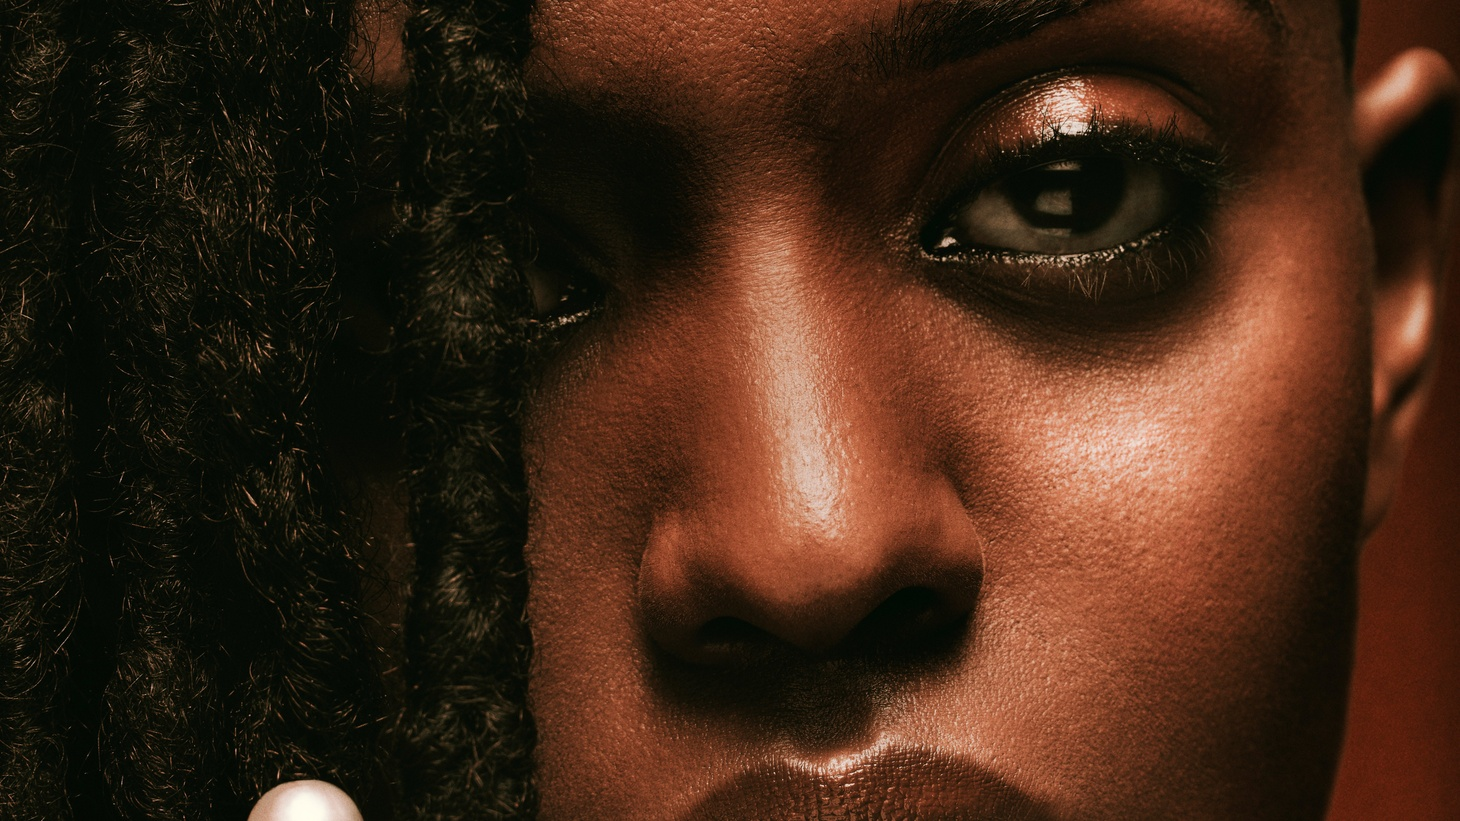 Kelela's debut album is an homage to R&B, both from the past and into the future. Honesty and vulnerability are cornerstones anchoring her sound. Last year she graced the recordings of several other artists, including Solange and Gorillaz.